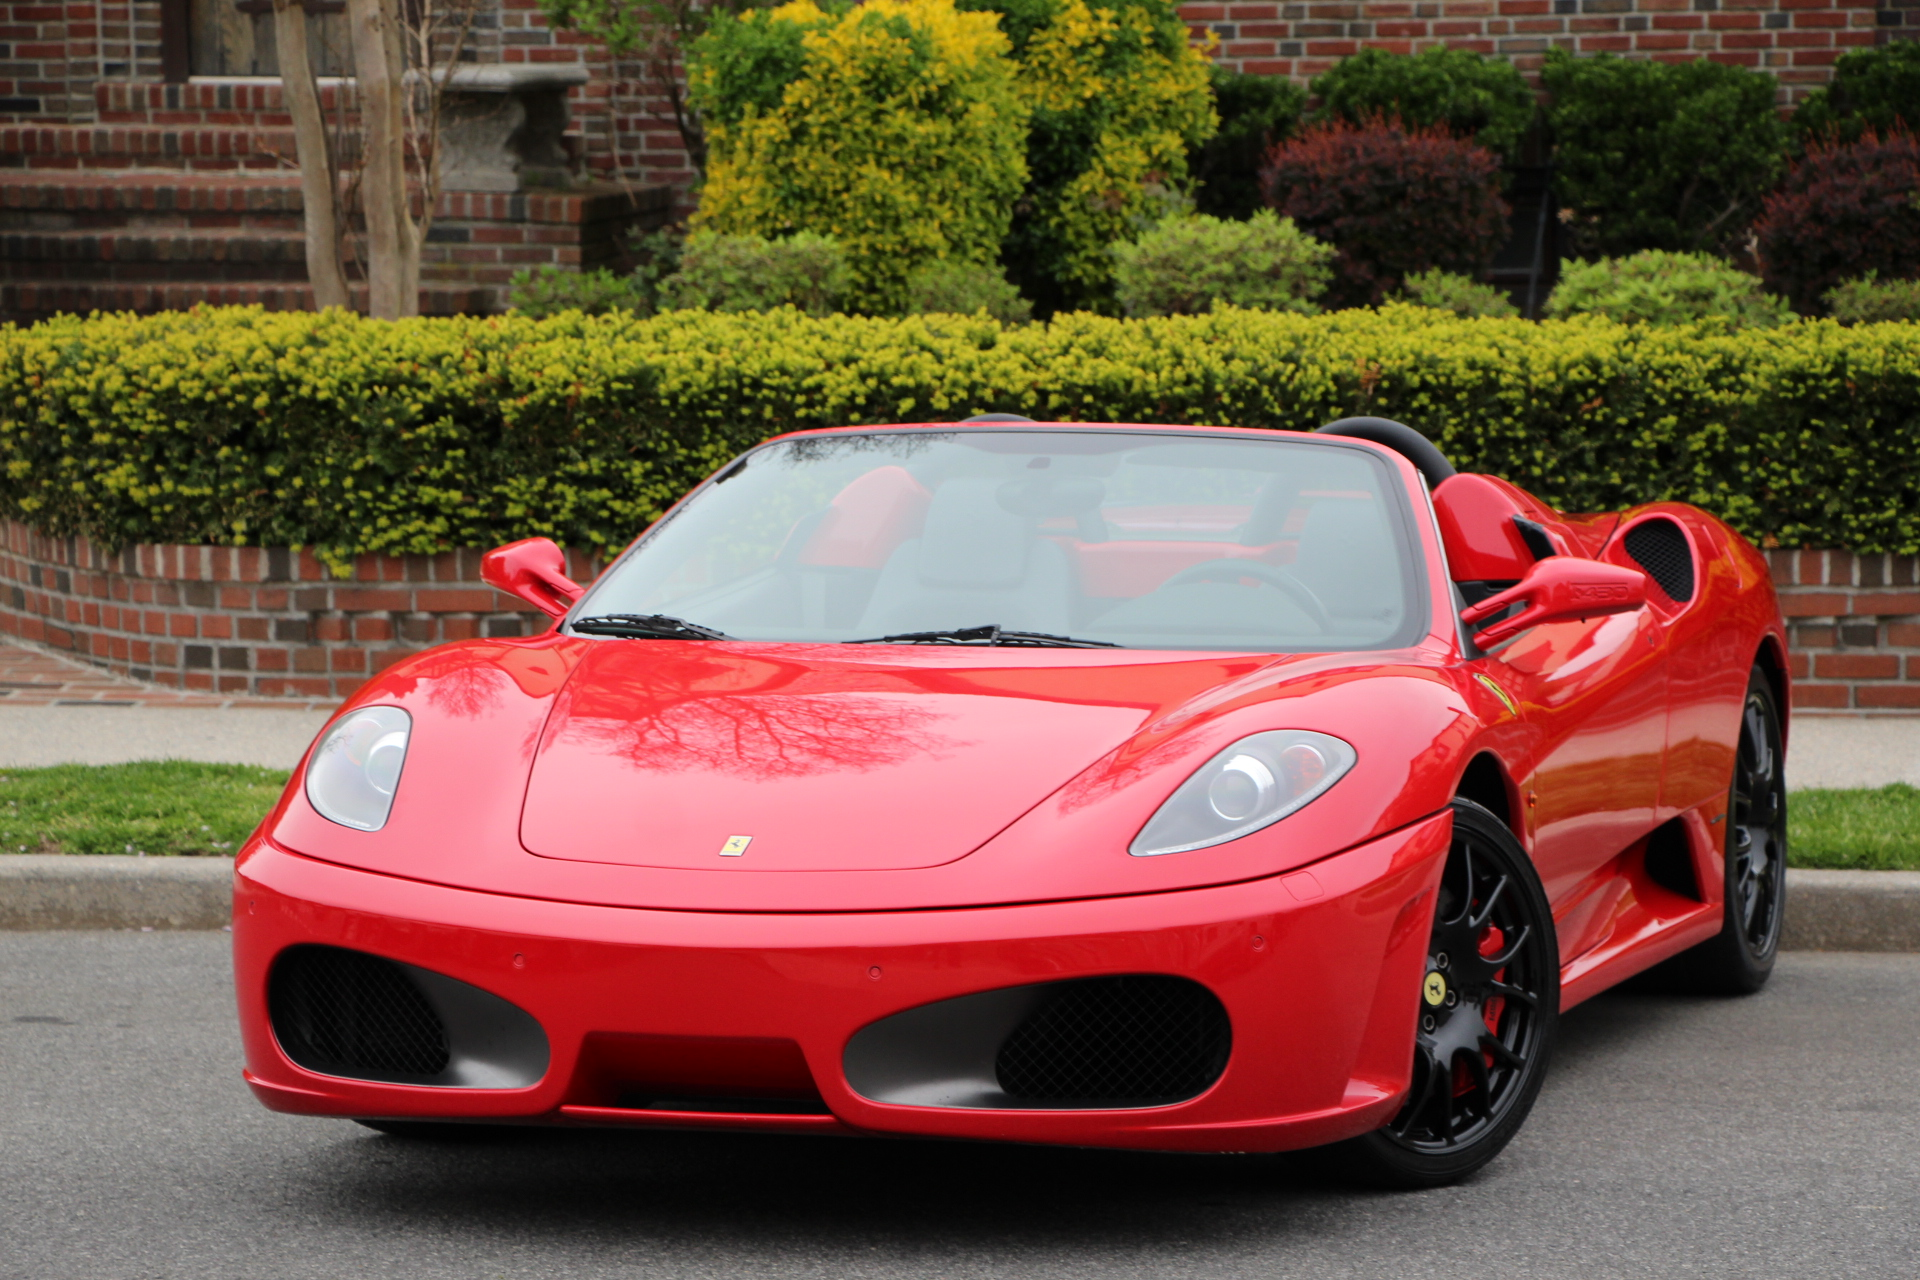 Buy Used 2007 Ferrari F430 Spider For 109 000 From Trusted Dealer In Brooklyn Ny